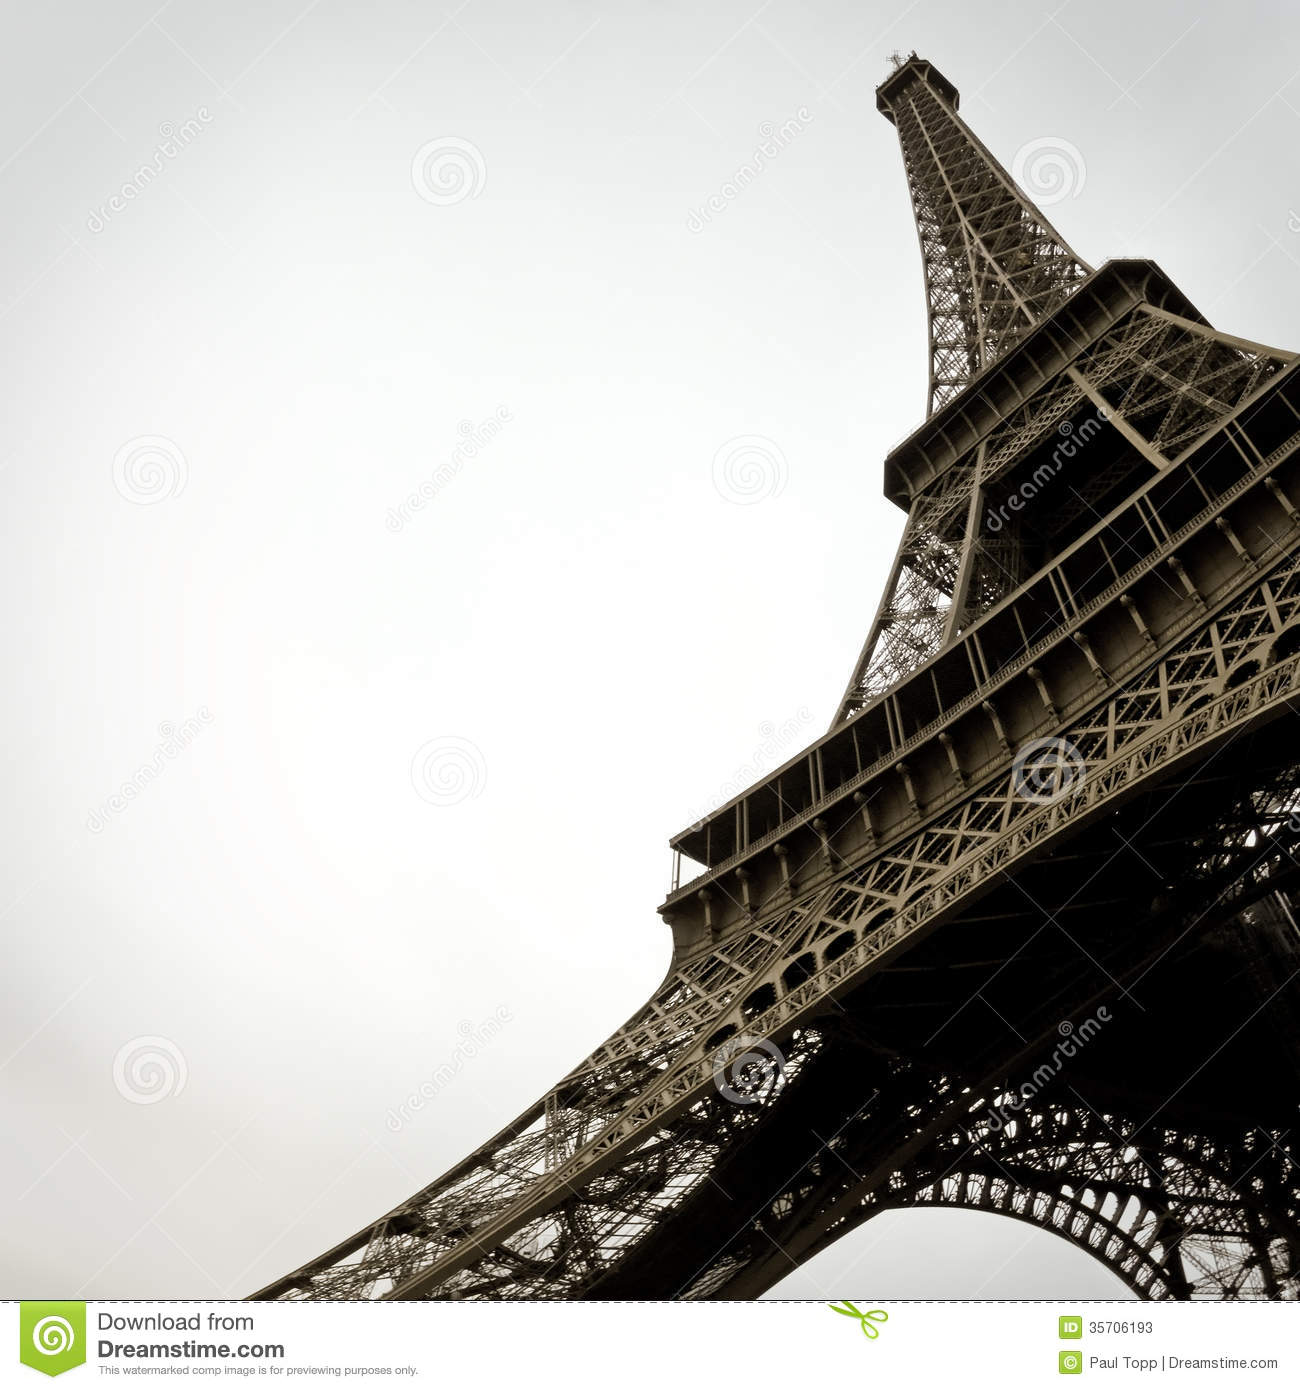 Black and White Eiffel Tower in the City of Paris France